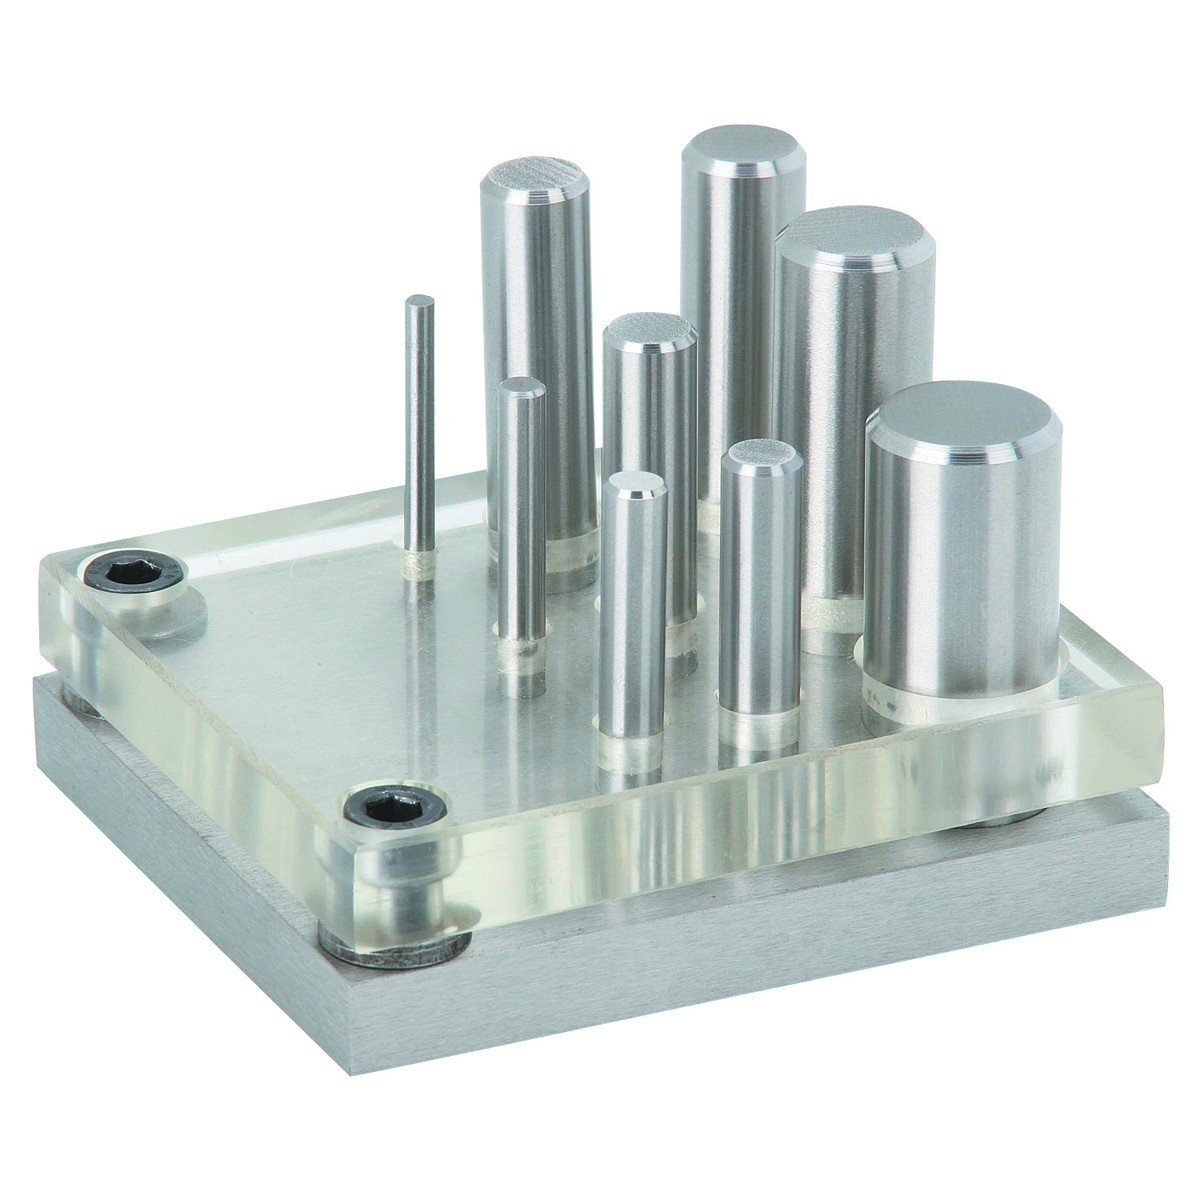 9 Piece Punch and Die Set by Central Purchasing, LLC